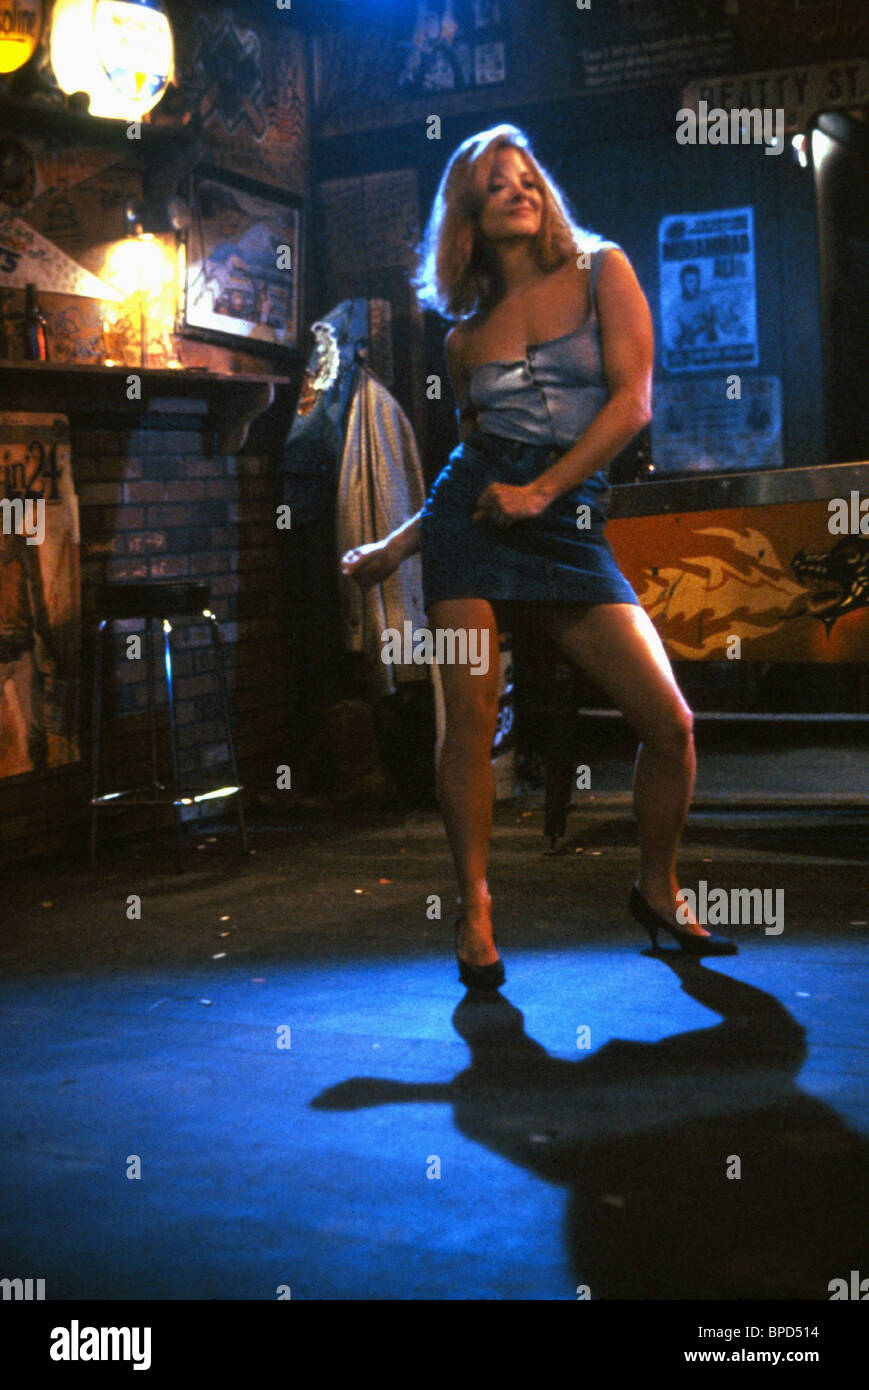 jodie foster the accused stock photo royalty image jodie foster the accused 1988